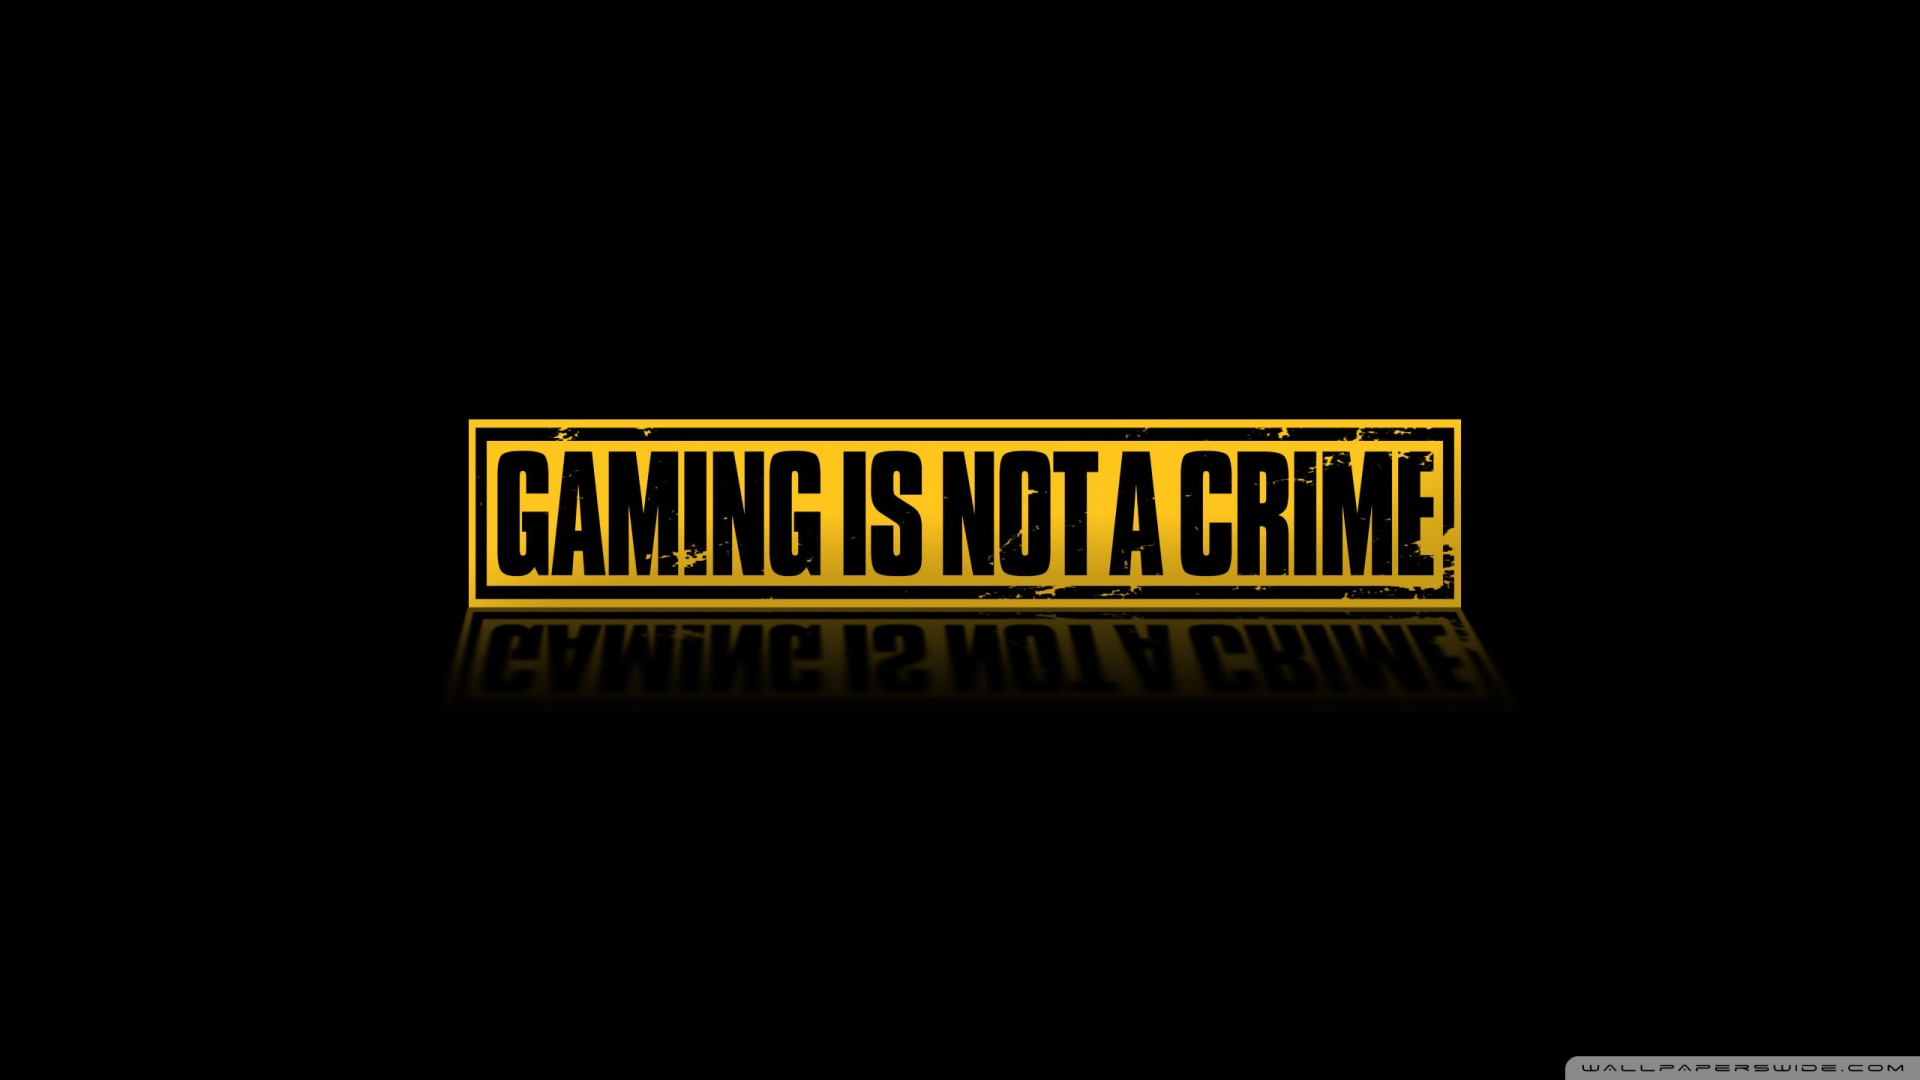 Download Gaming Is Not A Crime Wallpaper 1920x1080 Wallpoper 434966 1920x1080